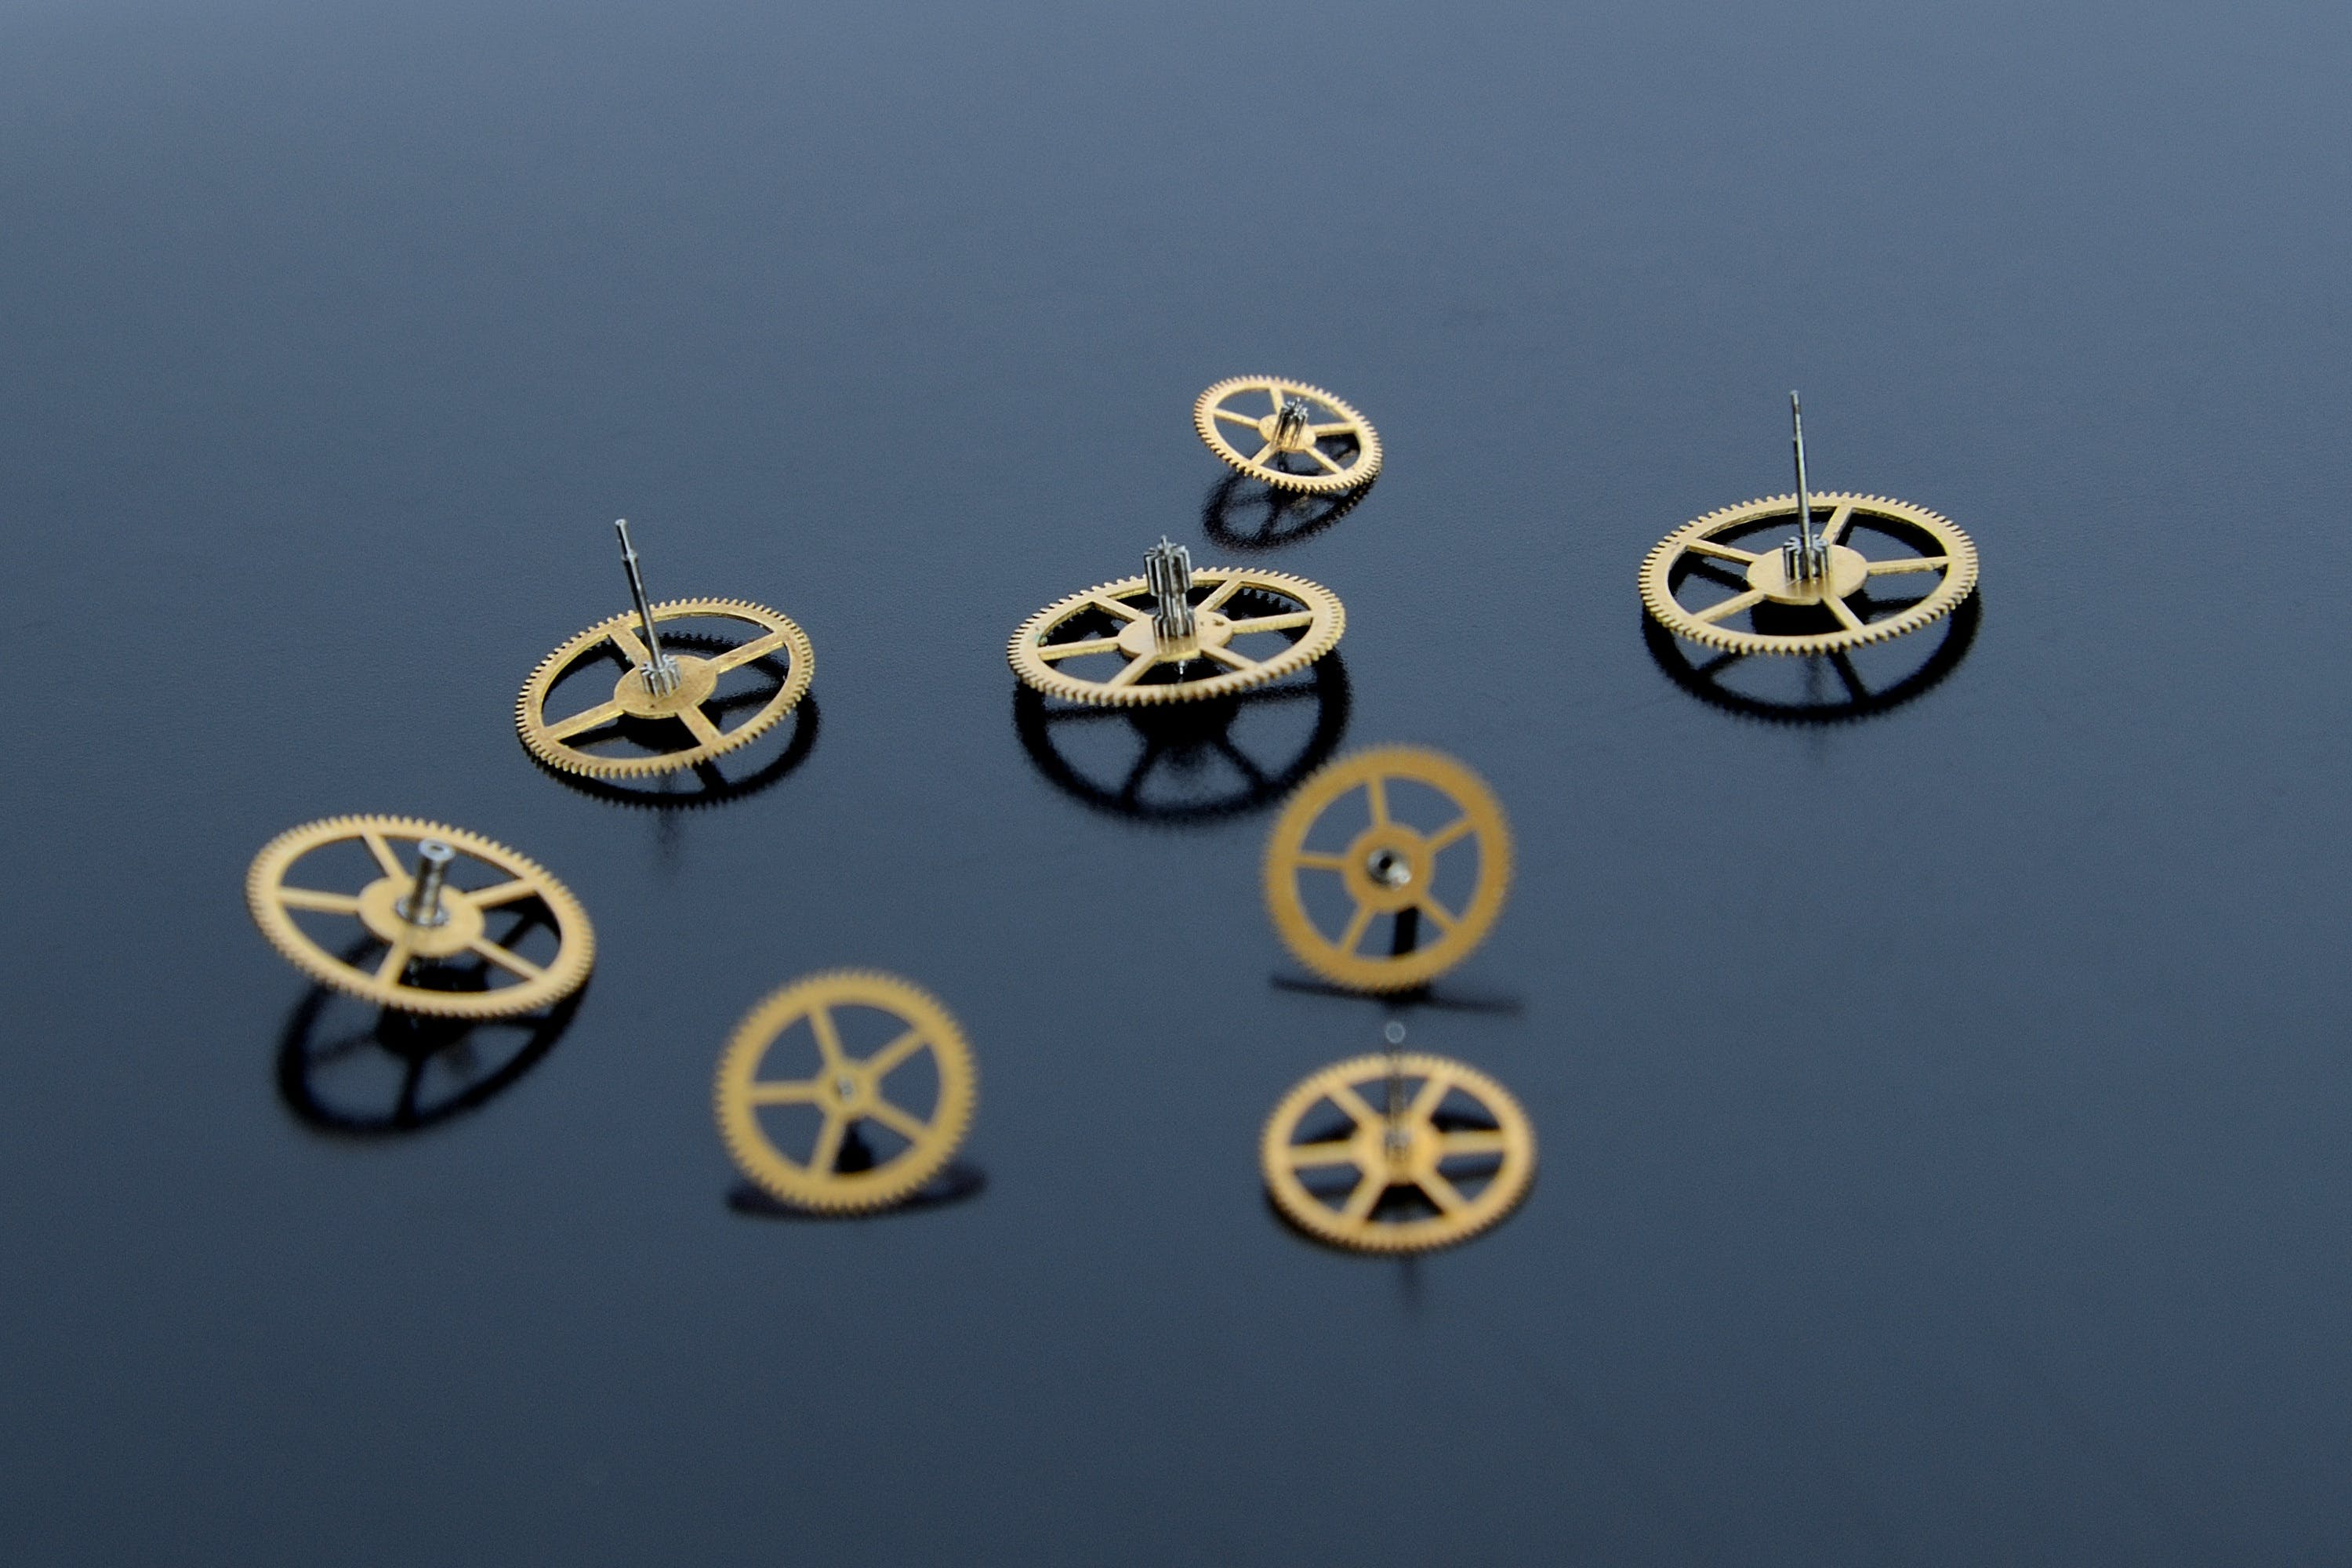 Gold-colored Watch Cogs